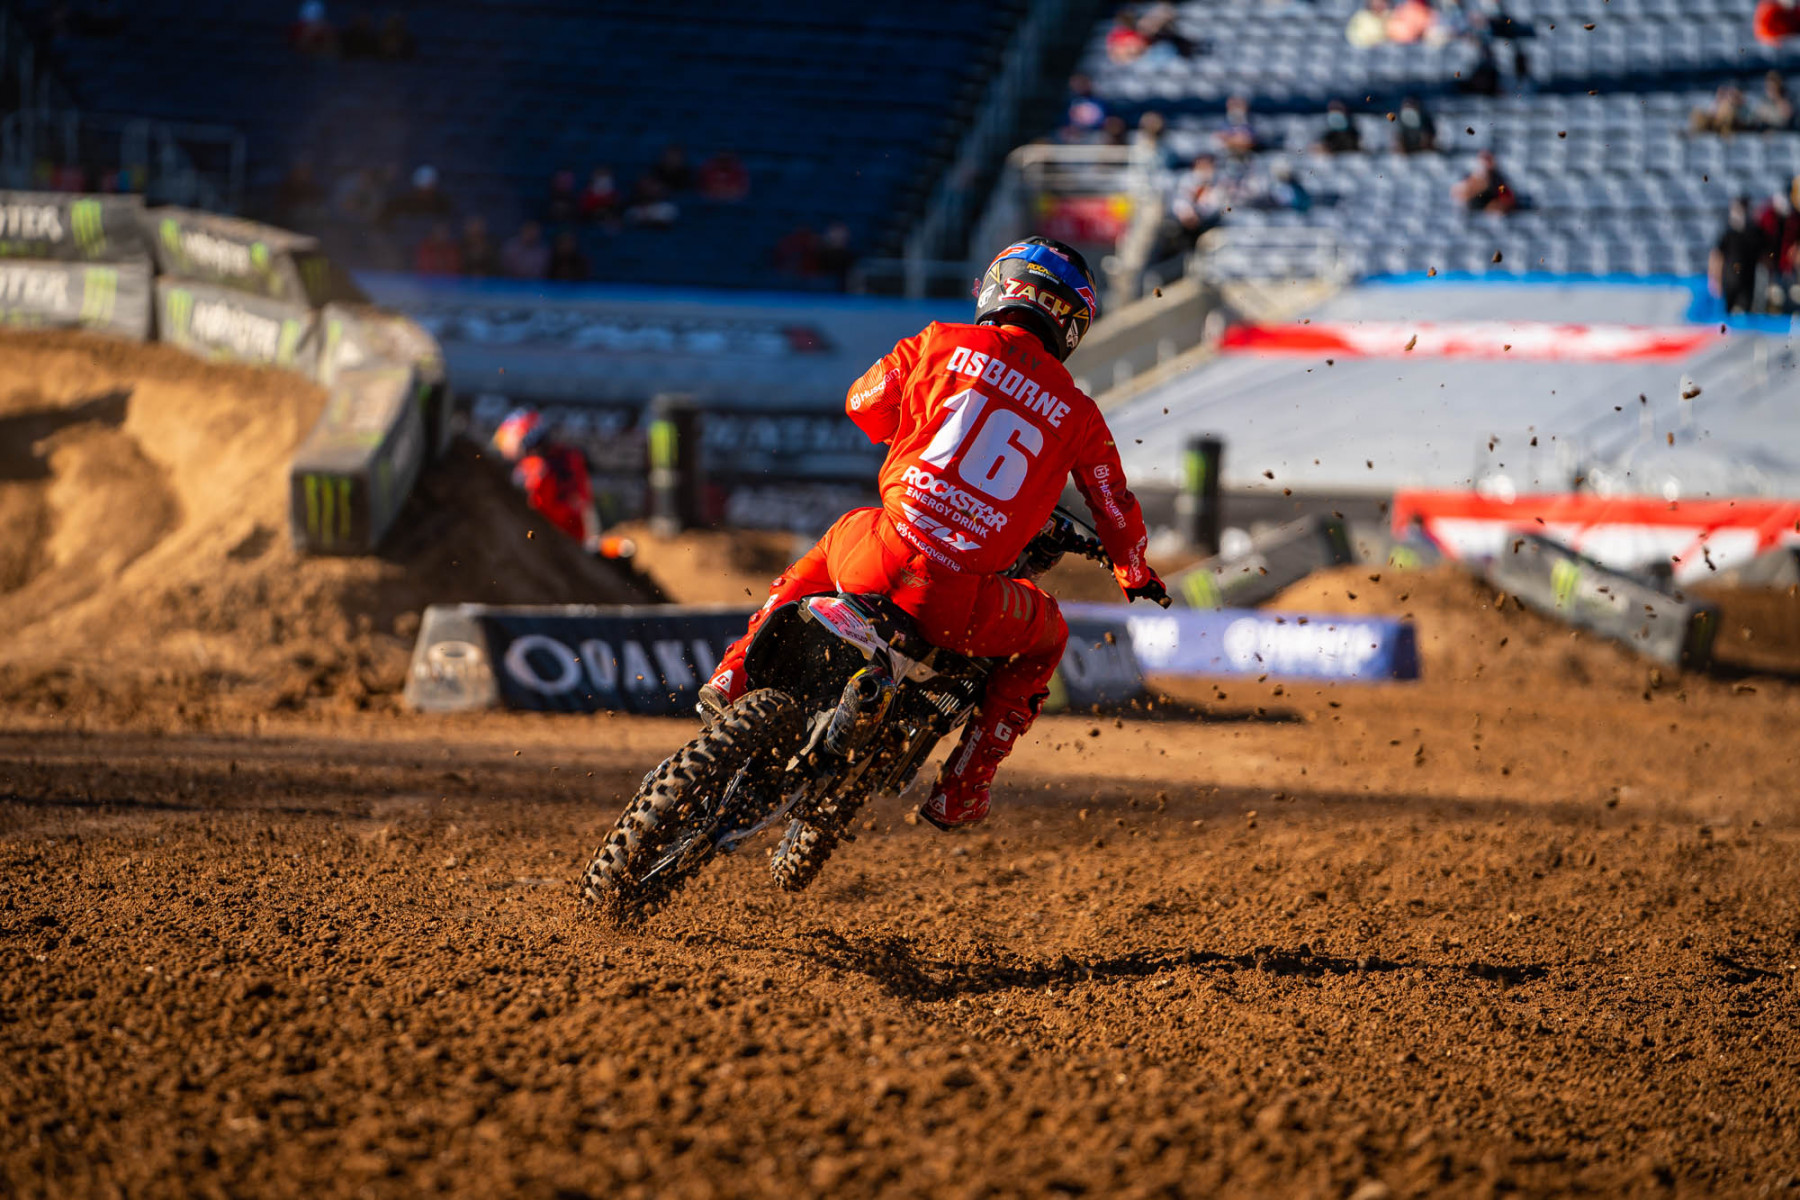 2021-ORLANDO-TWO-SUPERCROSS_KICKSTART_1515